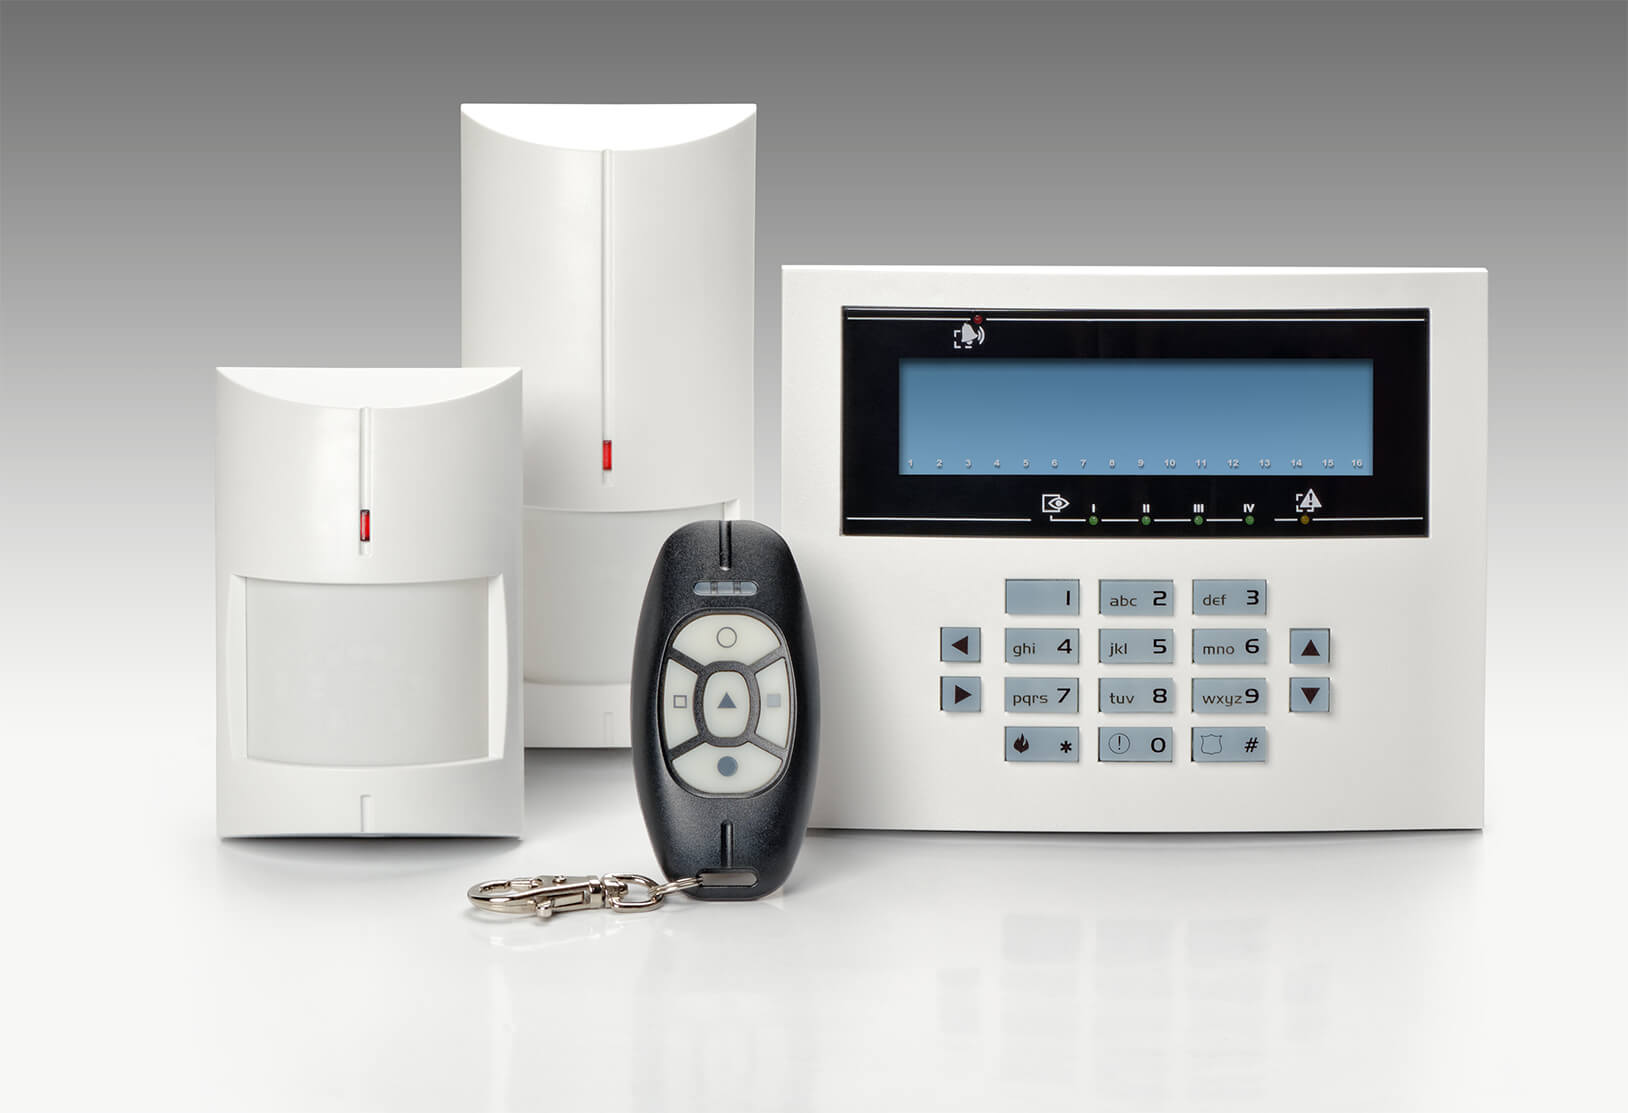 Business & Residential NACOSS Approved Burglar Alarms In Hither Green SE6 - Local Hither Green SE6 security company.Call 02078872244 - Dedicated to Safety & Security. Companies, shops and homes ..